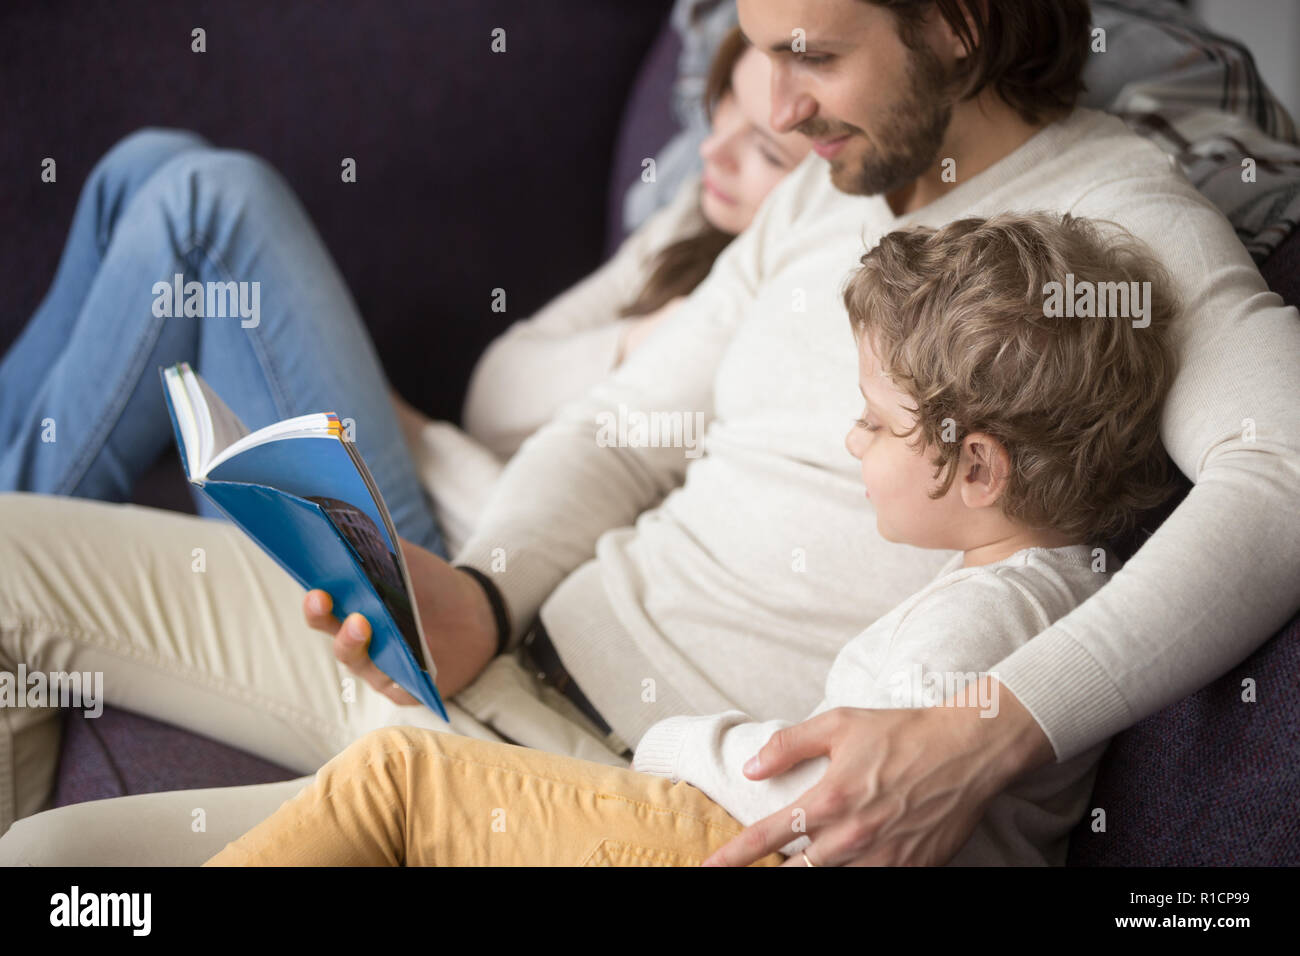 Family sitting on couch at home with a book - Stock Image